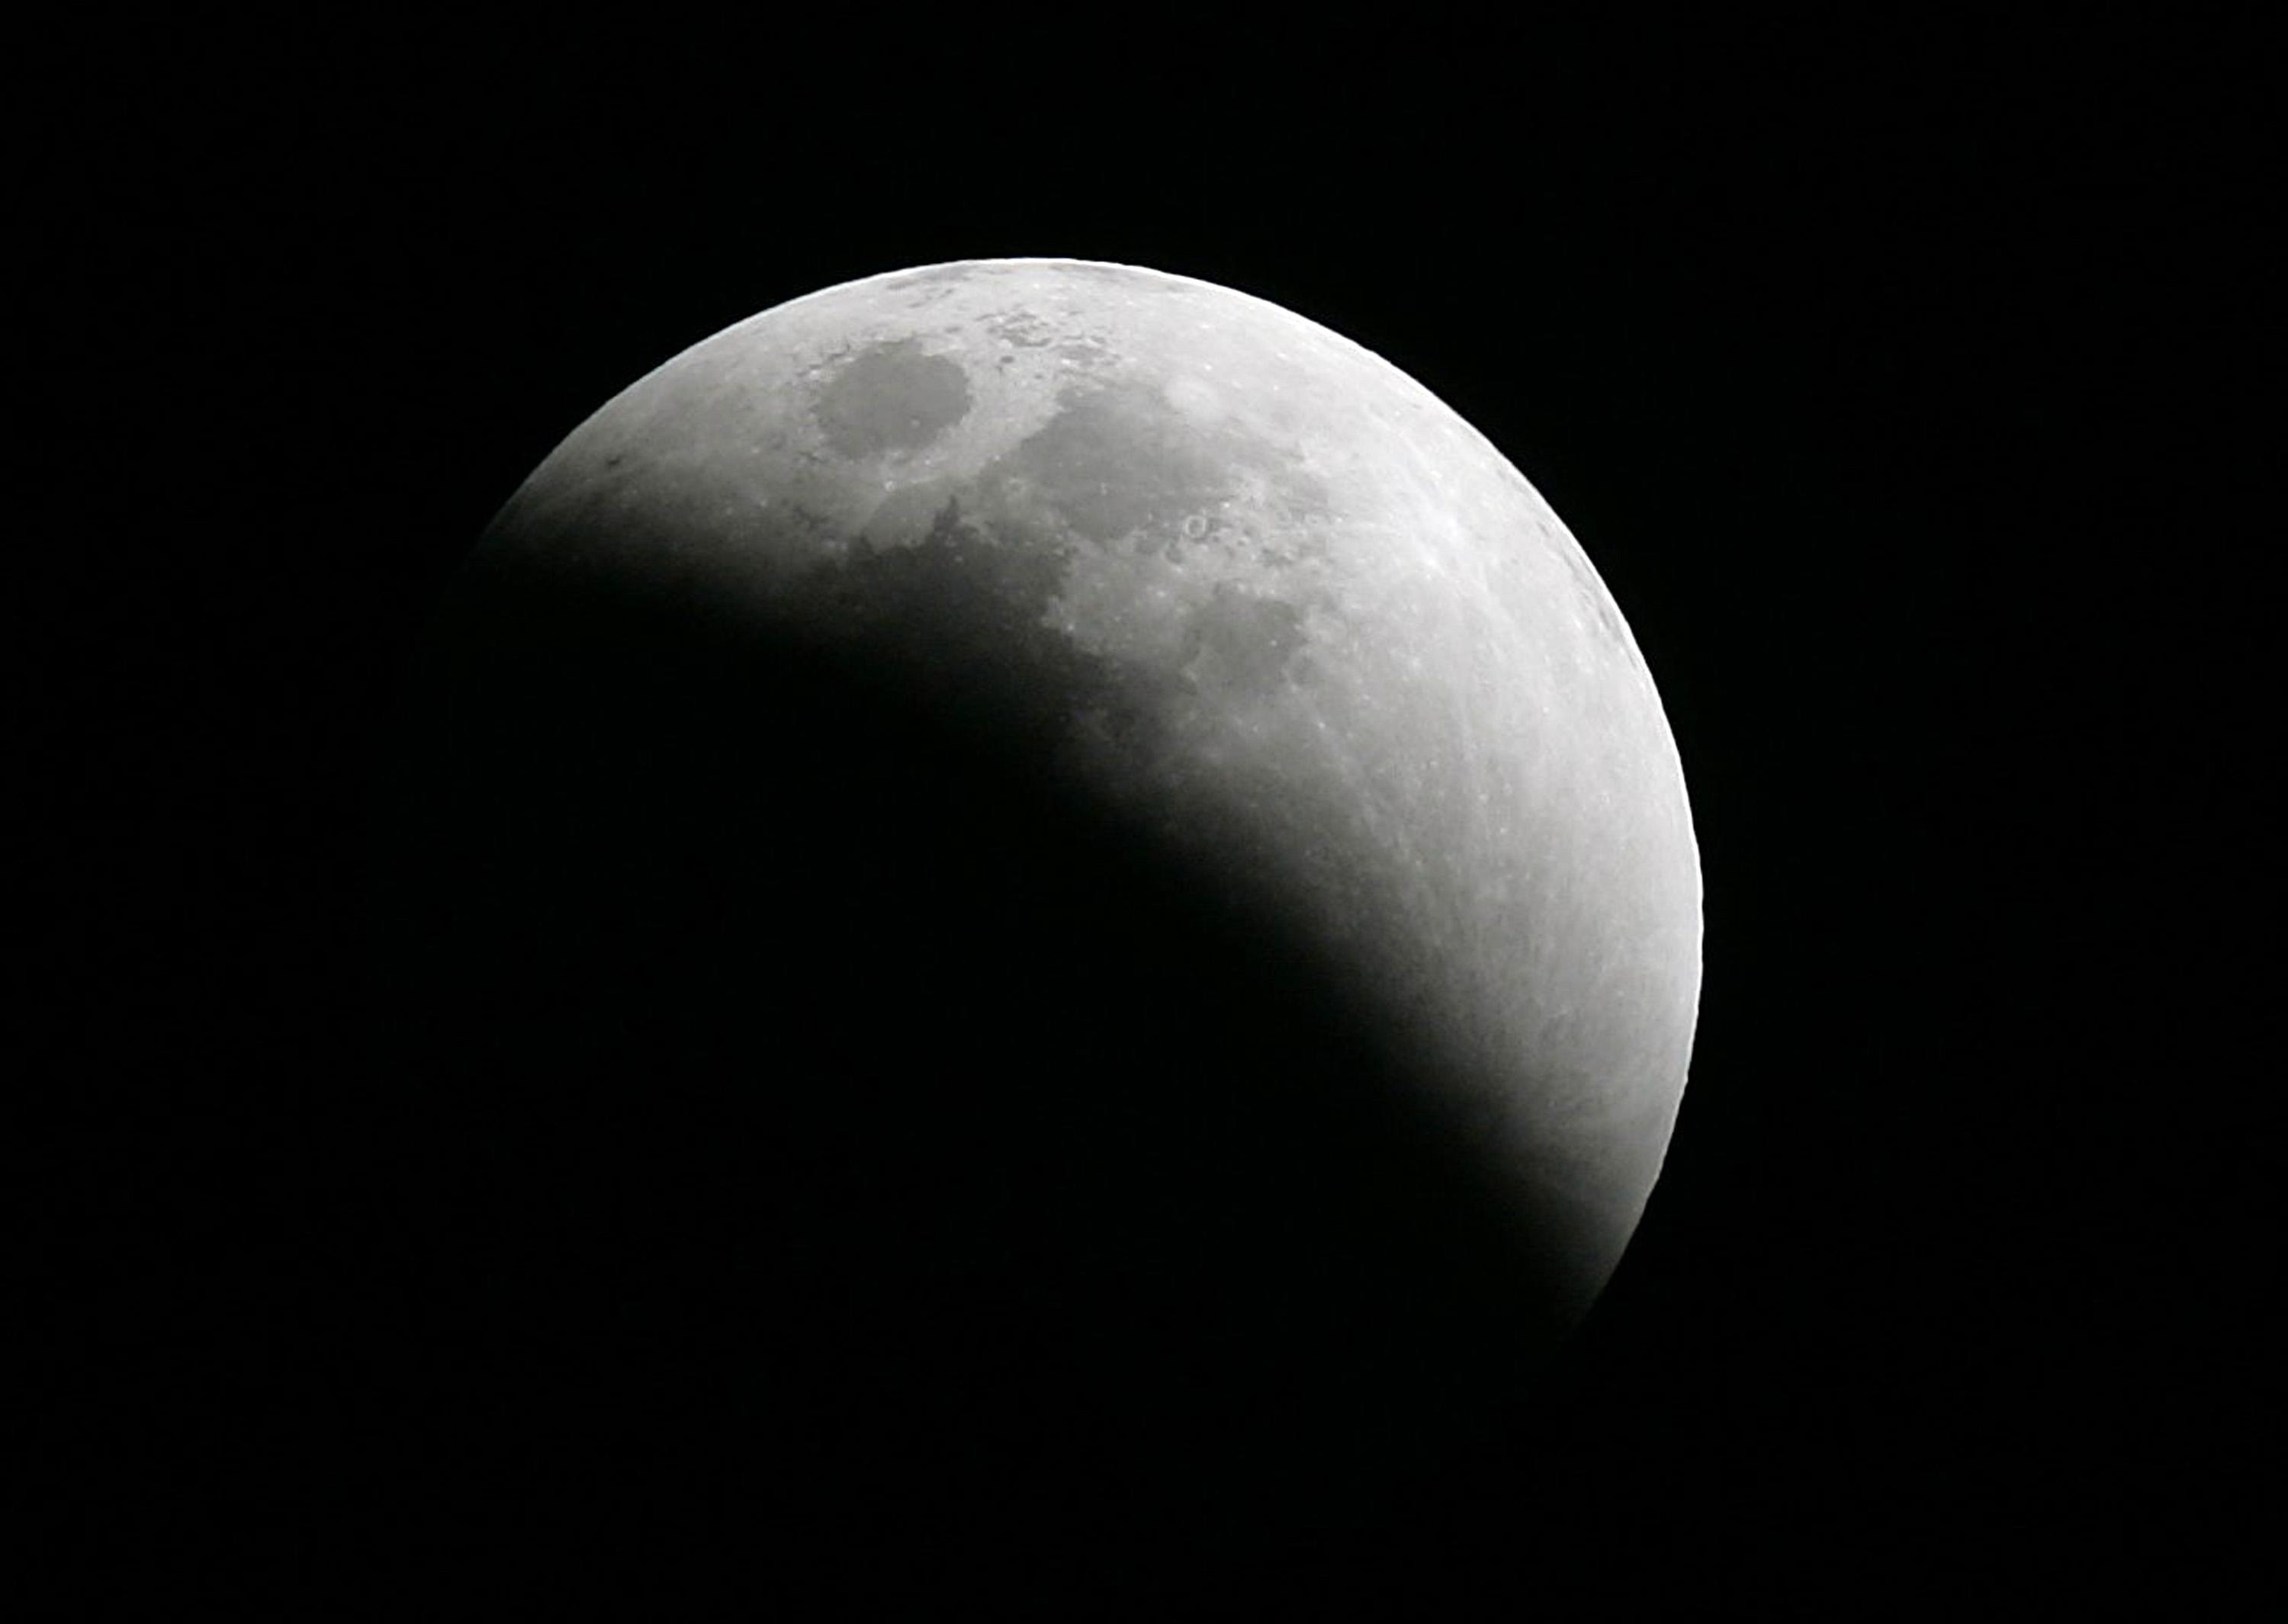 A lunar eclipse taking place over Lakeland, Florida, Wednesday, February 20, 2008. Photo Credit: Mandi Wright/Detroit Free Press/MCT